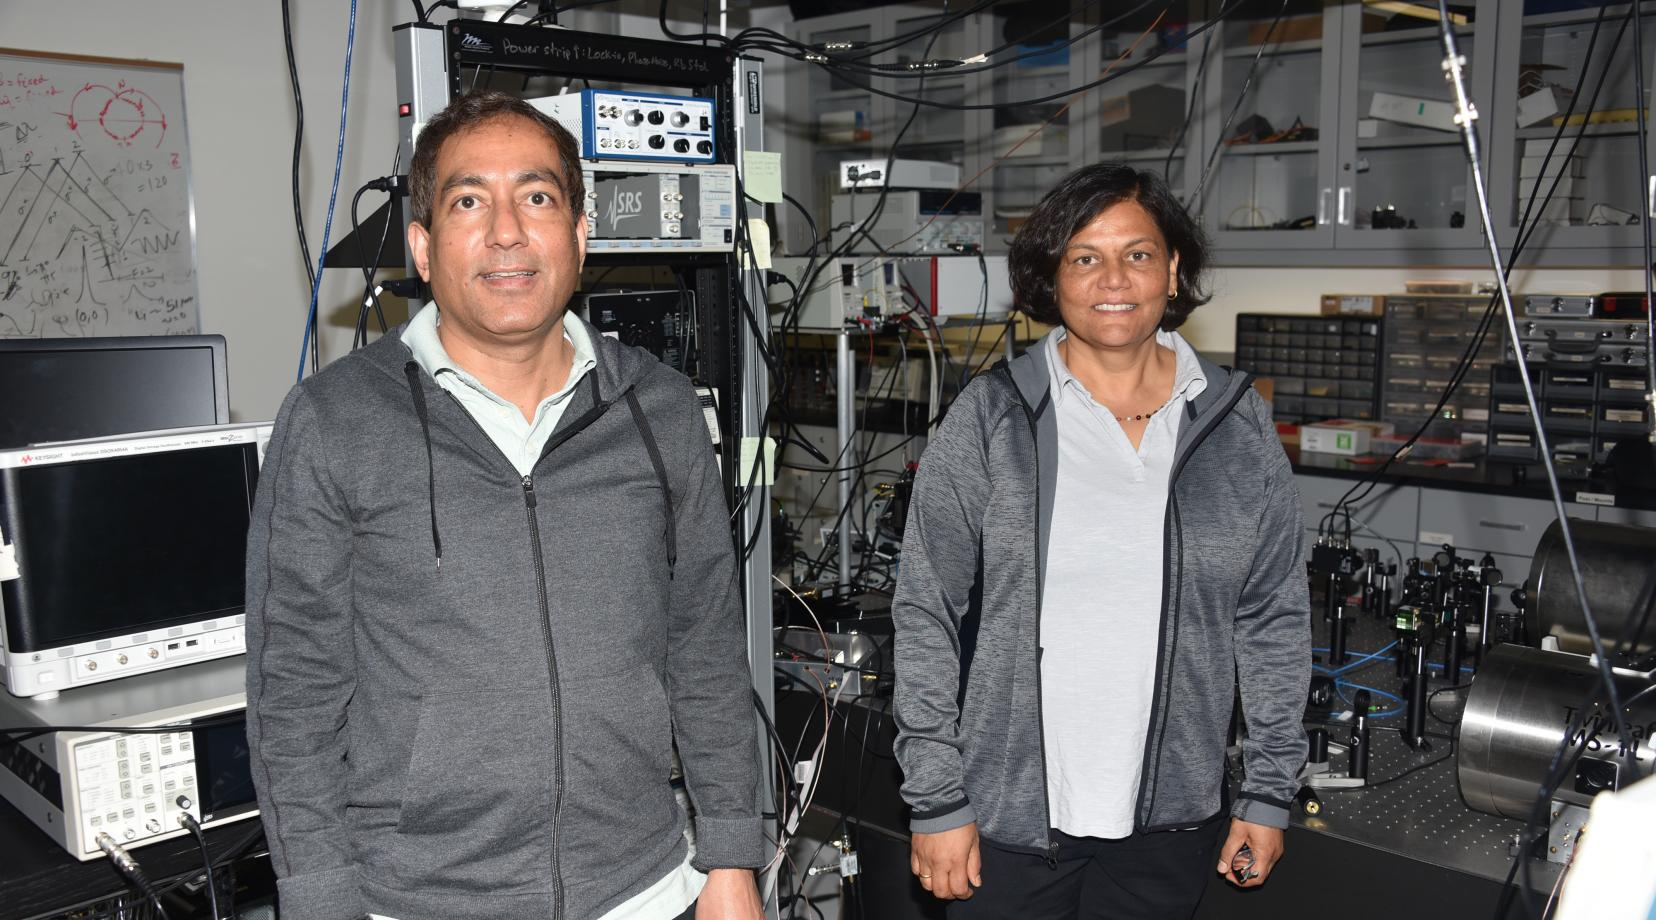 Dr. Gour Pati and Dr. Renu Tripathi, both professors of physics and engineering, are the principal investigator and co-PI, respectively, of a $239,908 U.S. Department of Defense grant to develop a millimeter wave quantum sensing system.